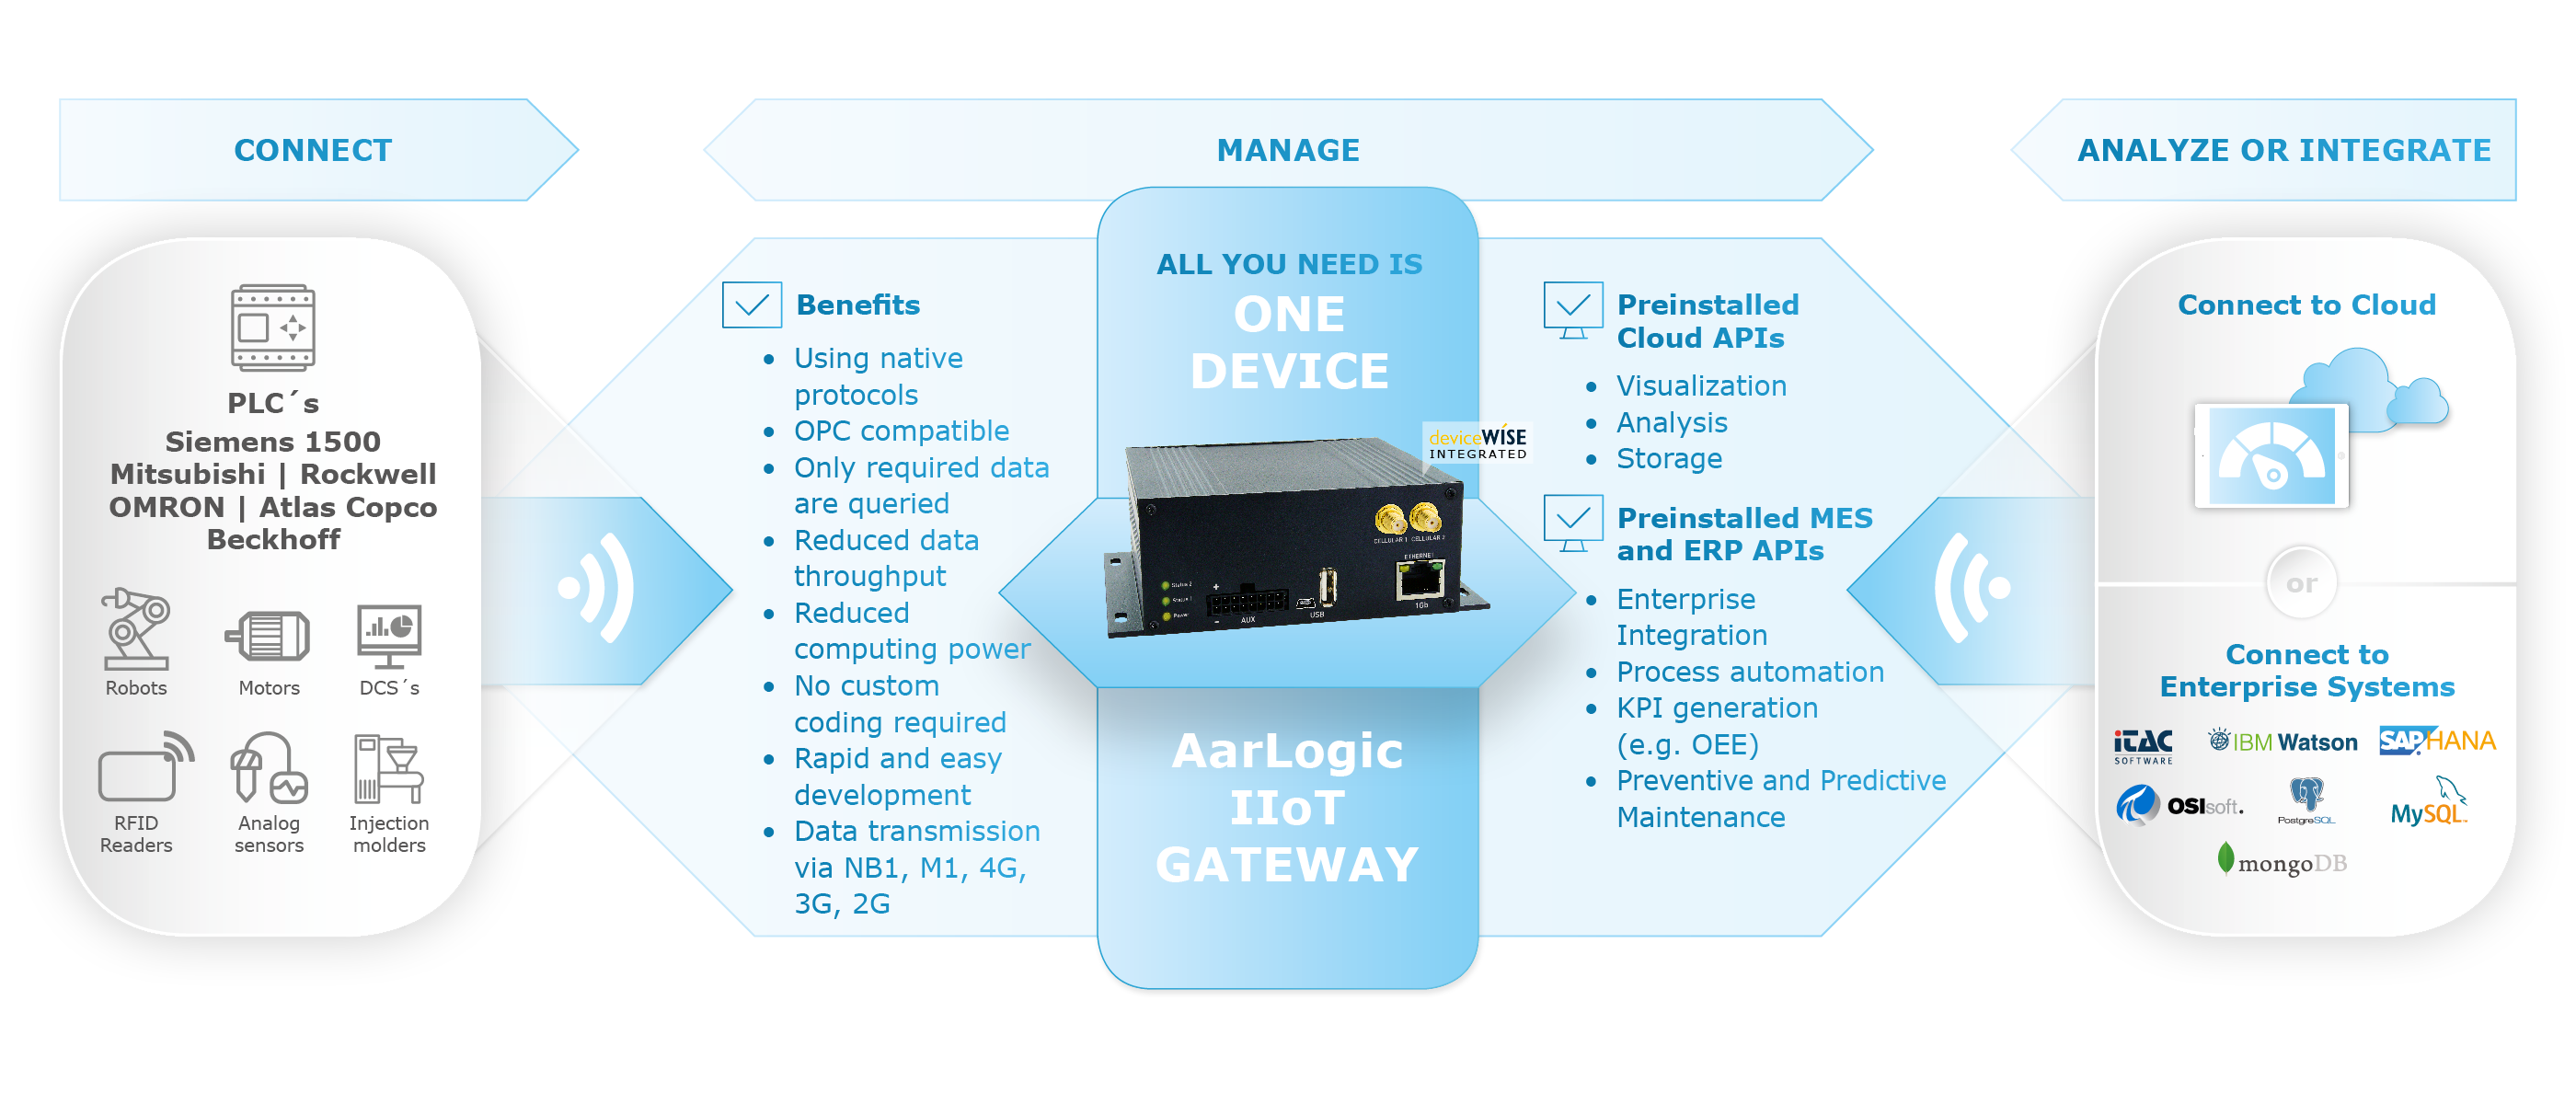 AarLogic-IIoT-Gateway-dewiseWISE-How-it-works